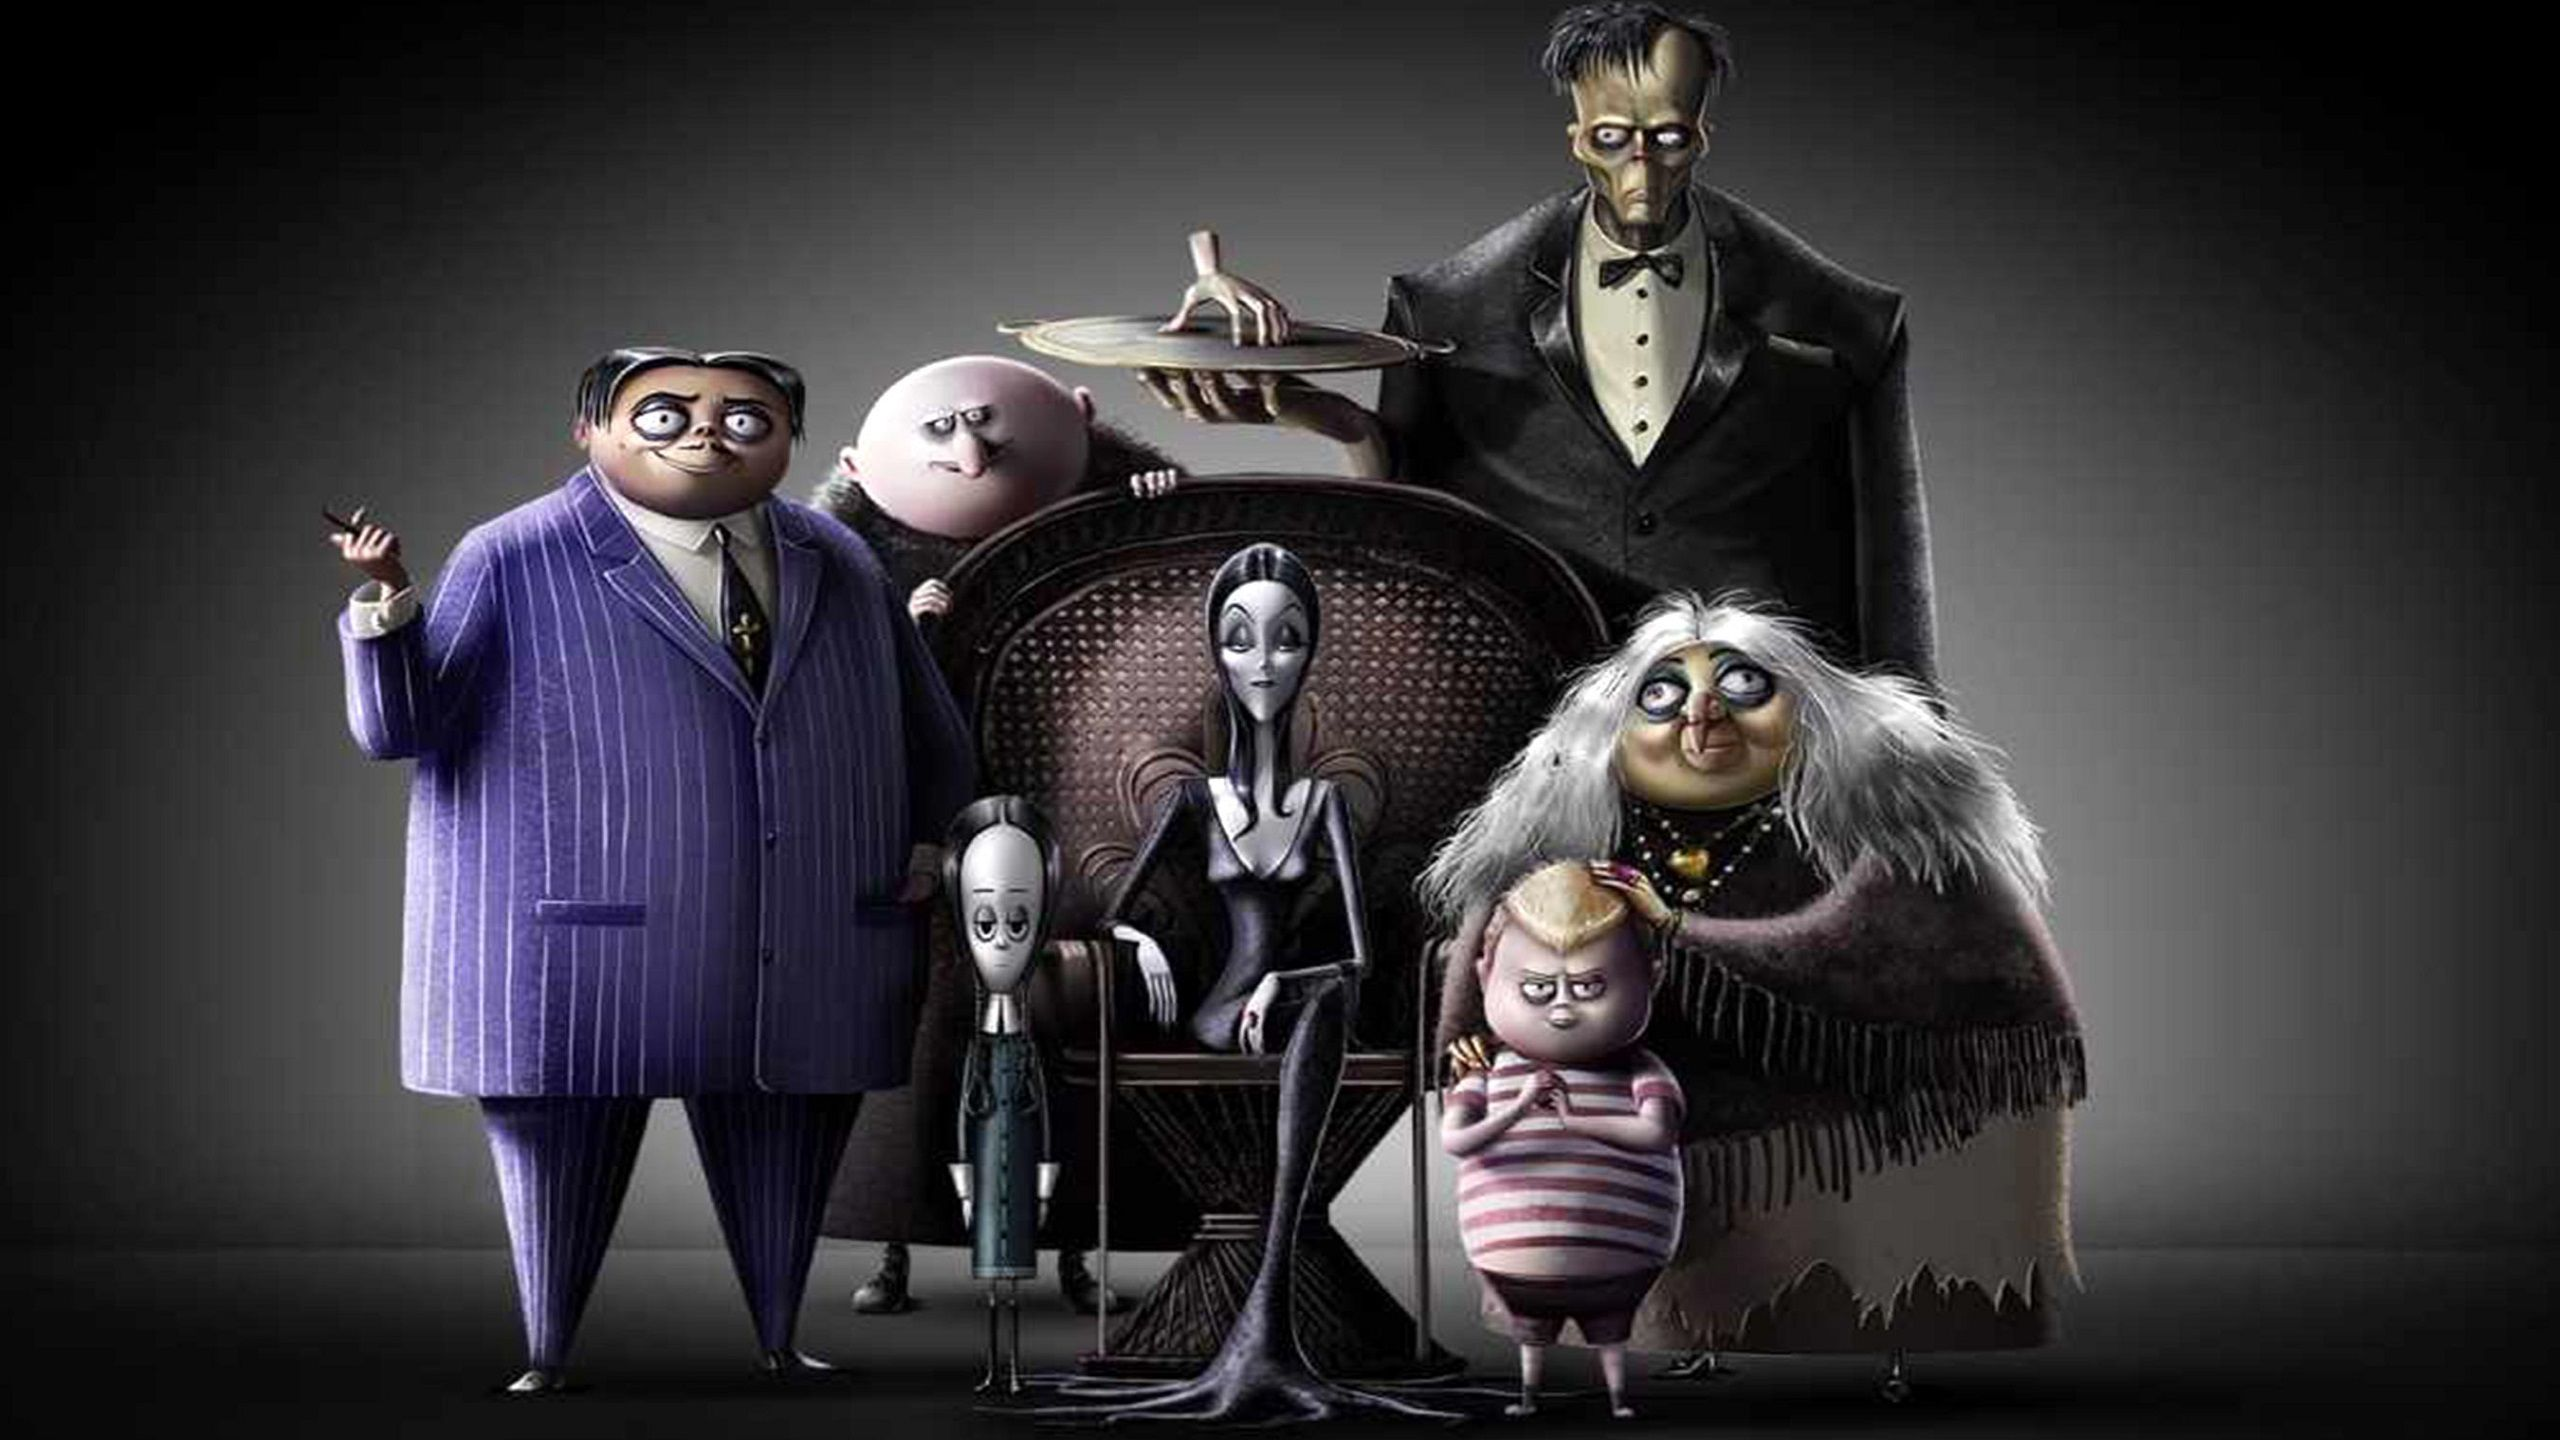 The Addams Family (animated 2019) characters